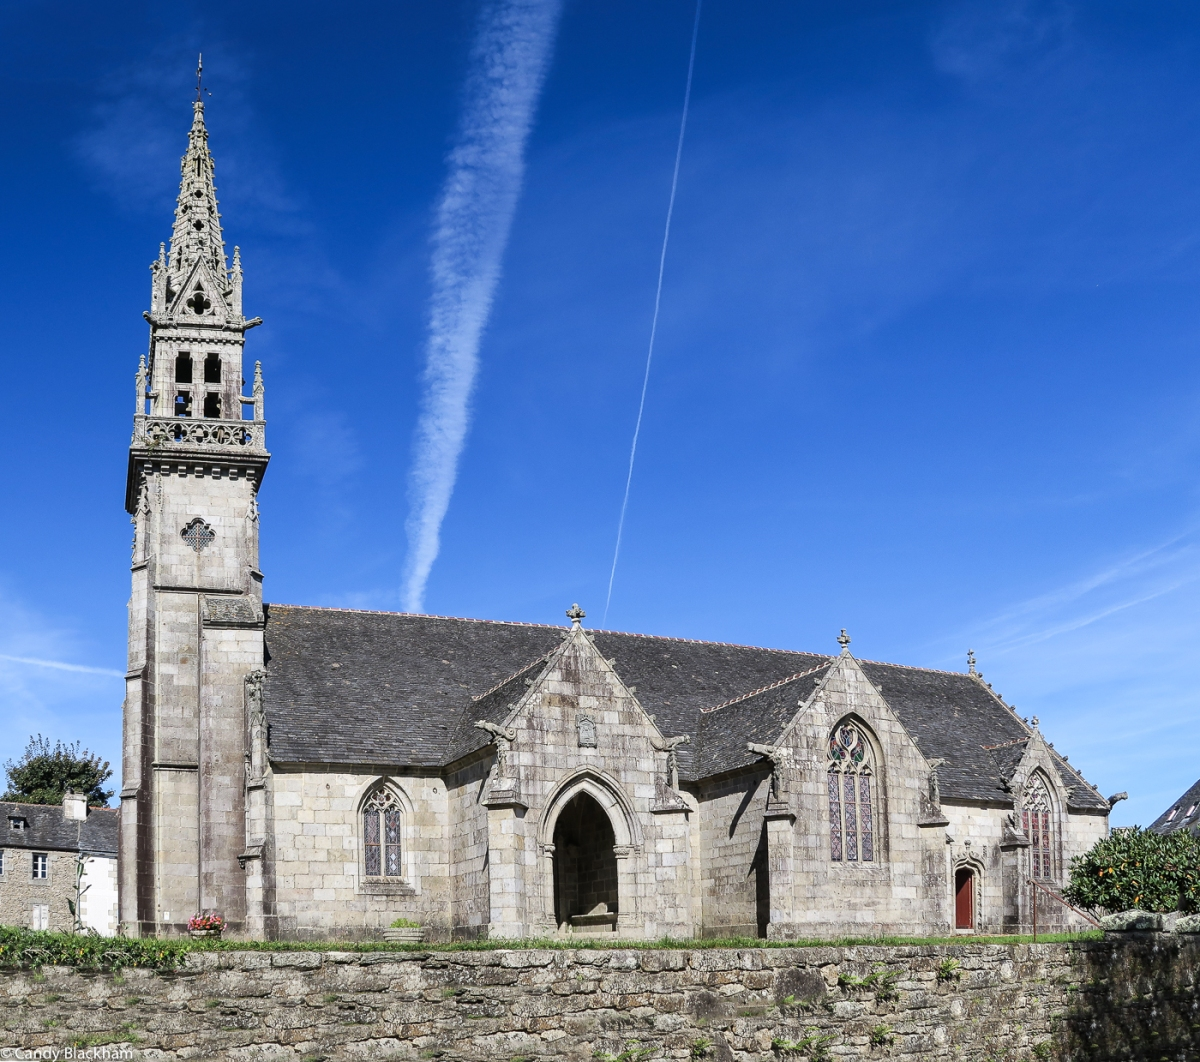 The Church of St John the Baptist in La Feuillee